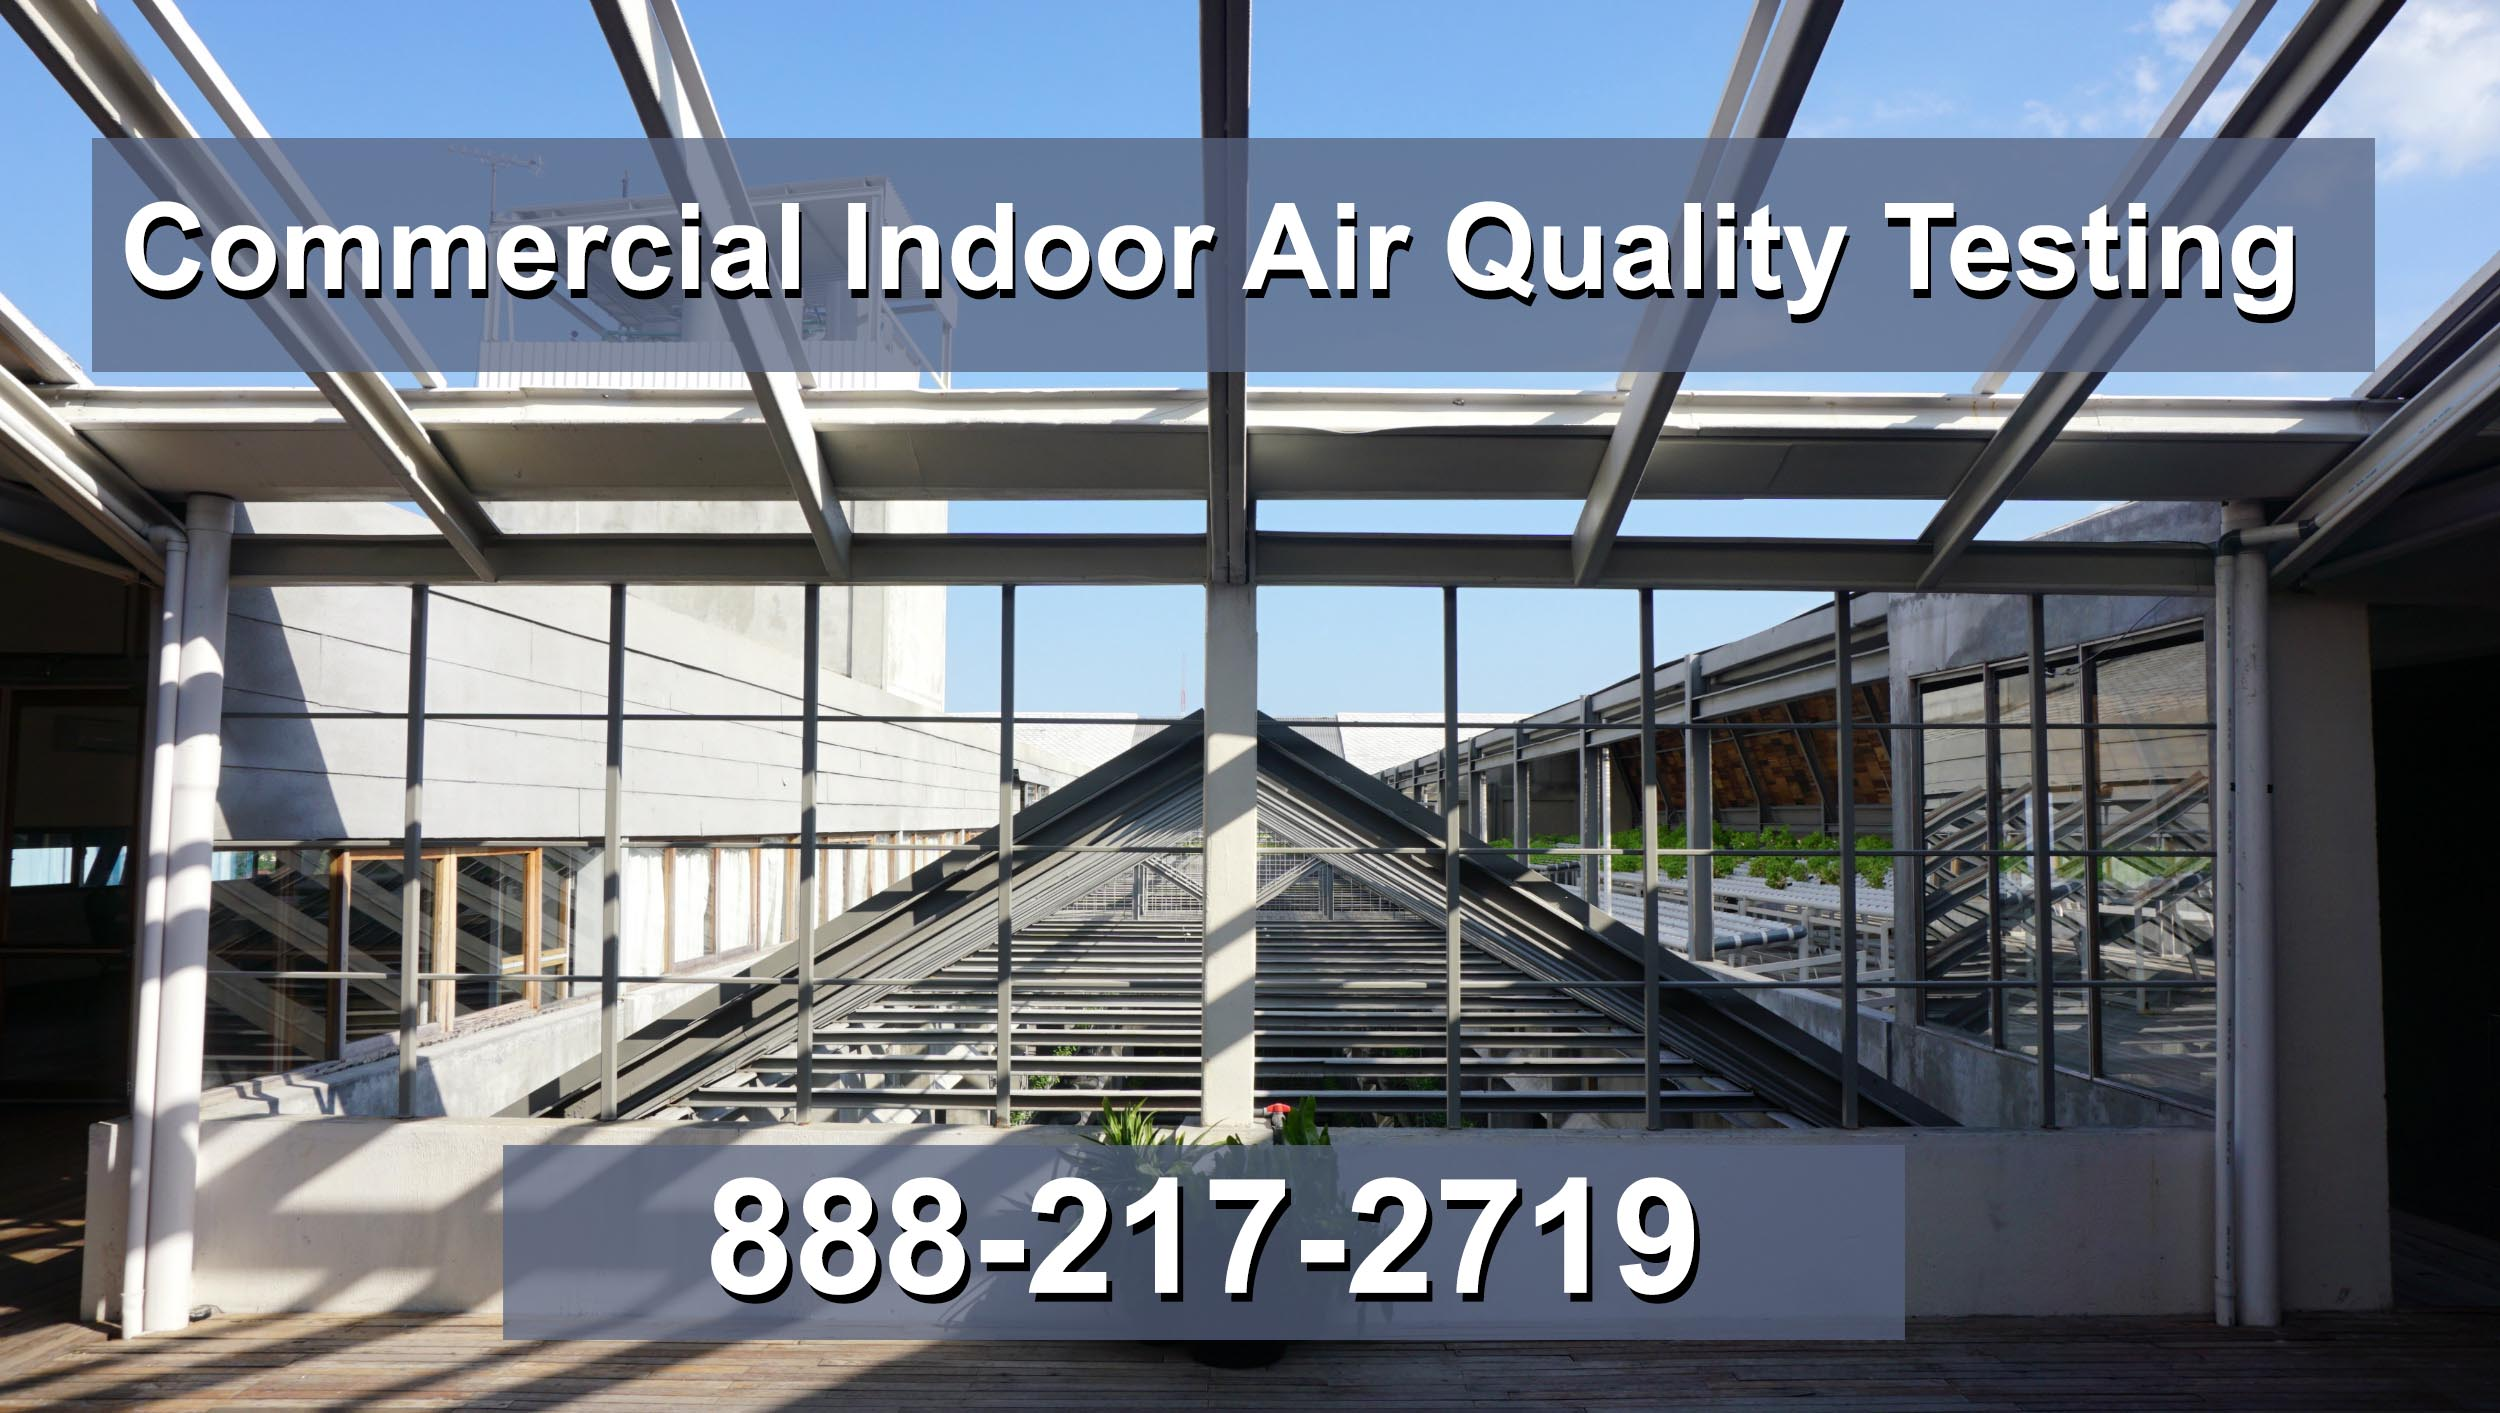 Indoor Air Quality Testing in Huntington Beach CA